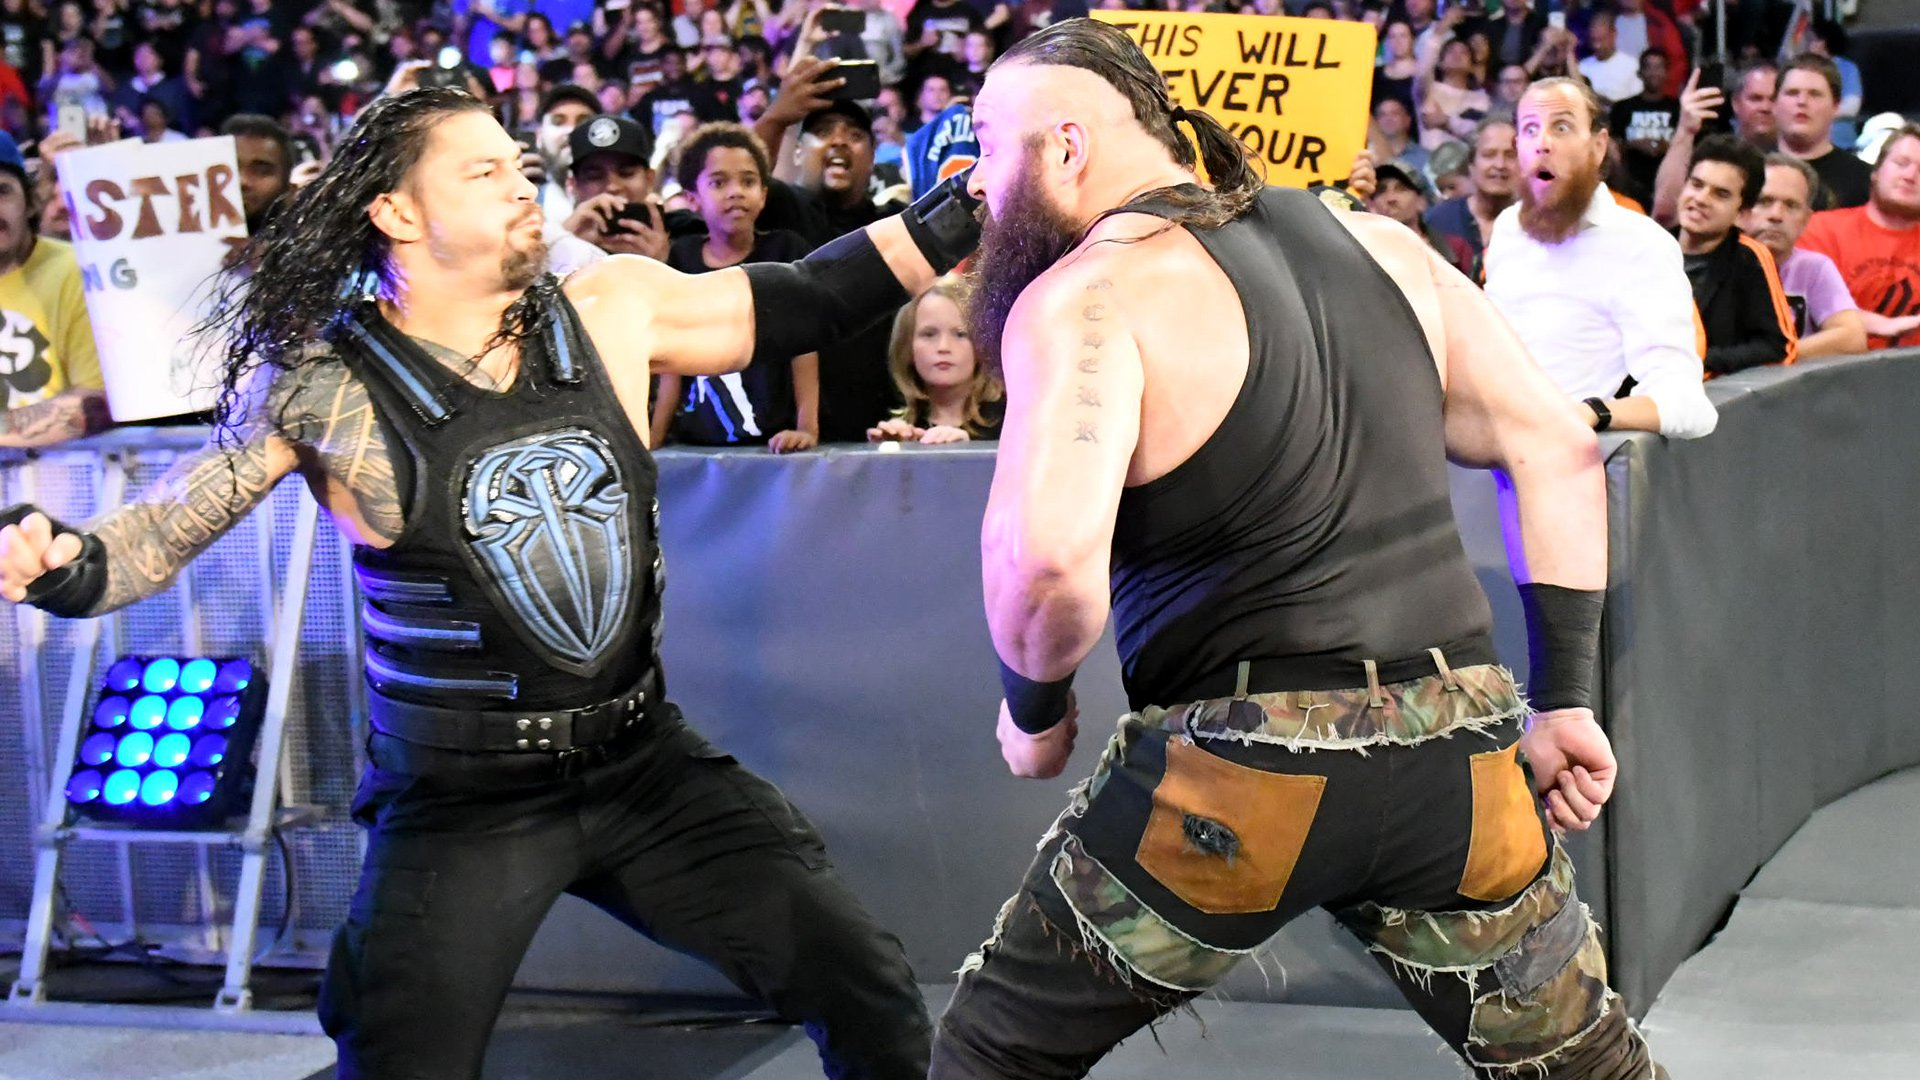 The Monster Among Men meets Reigns on the ramp and the fight is on!